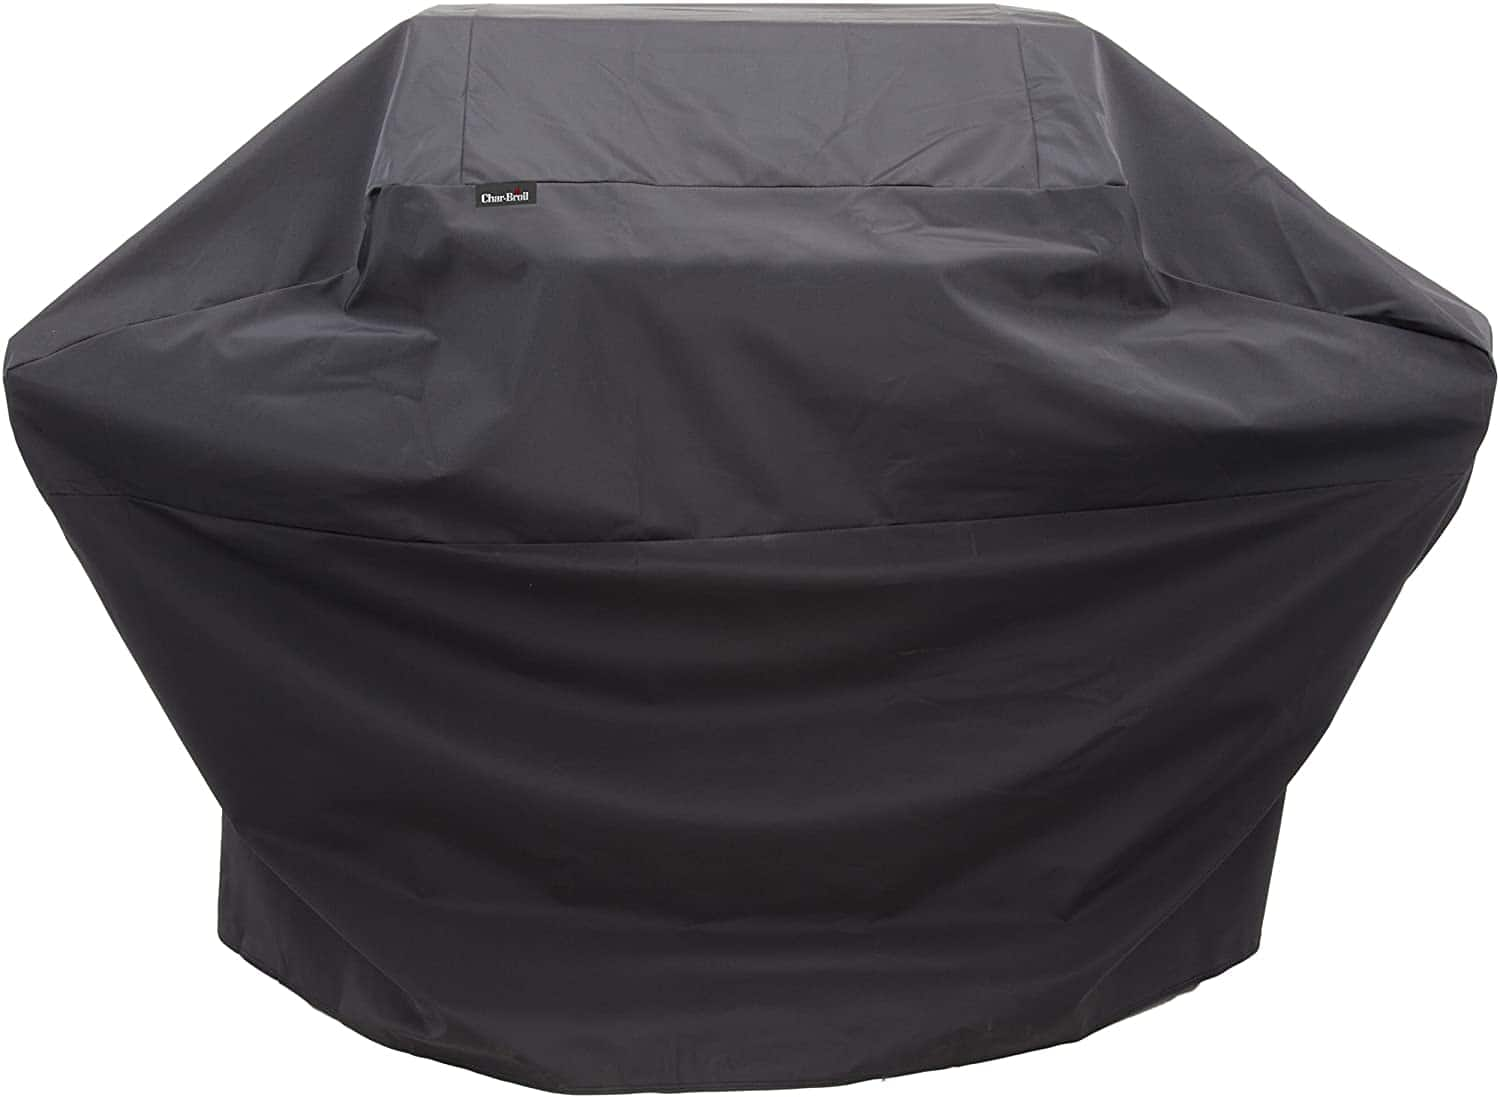 Char Broil Performance Extra Large Grill Cover $16 at Amazon